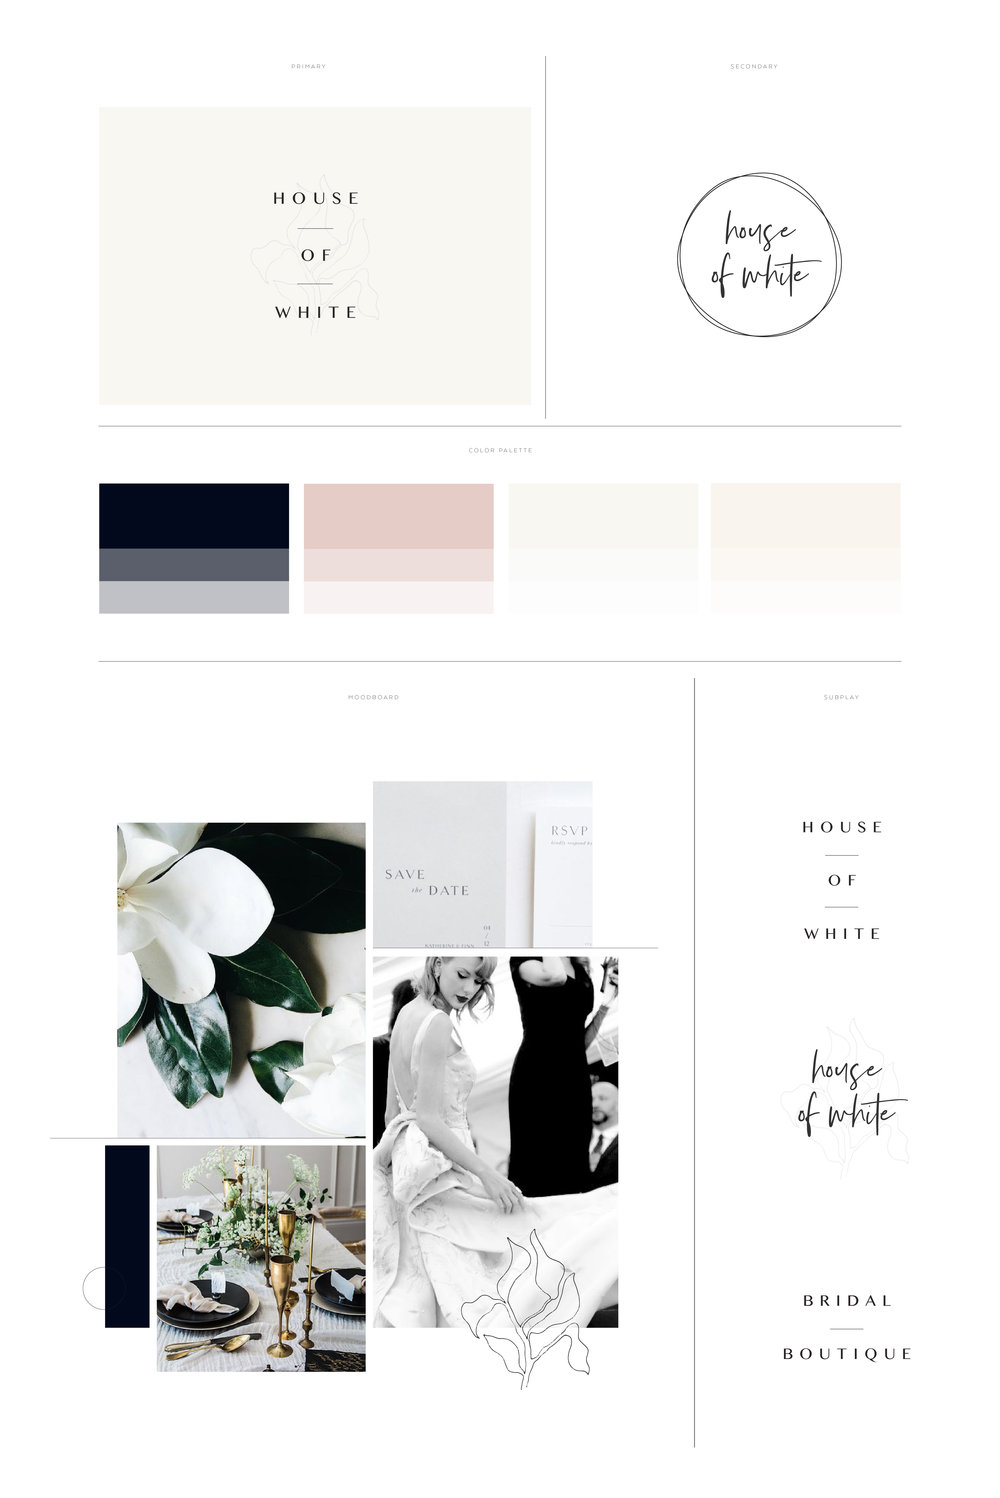 HOUSEOFWHITE_HONOR_BRANDBOARD_04.jpg